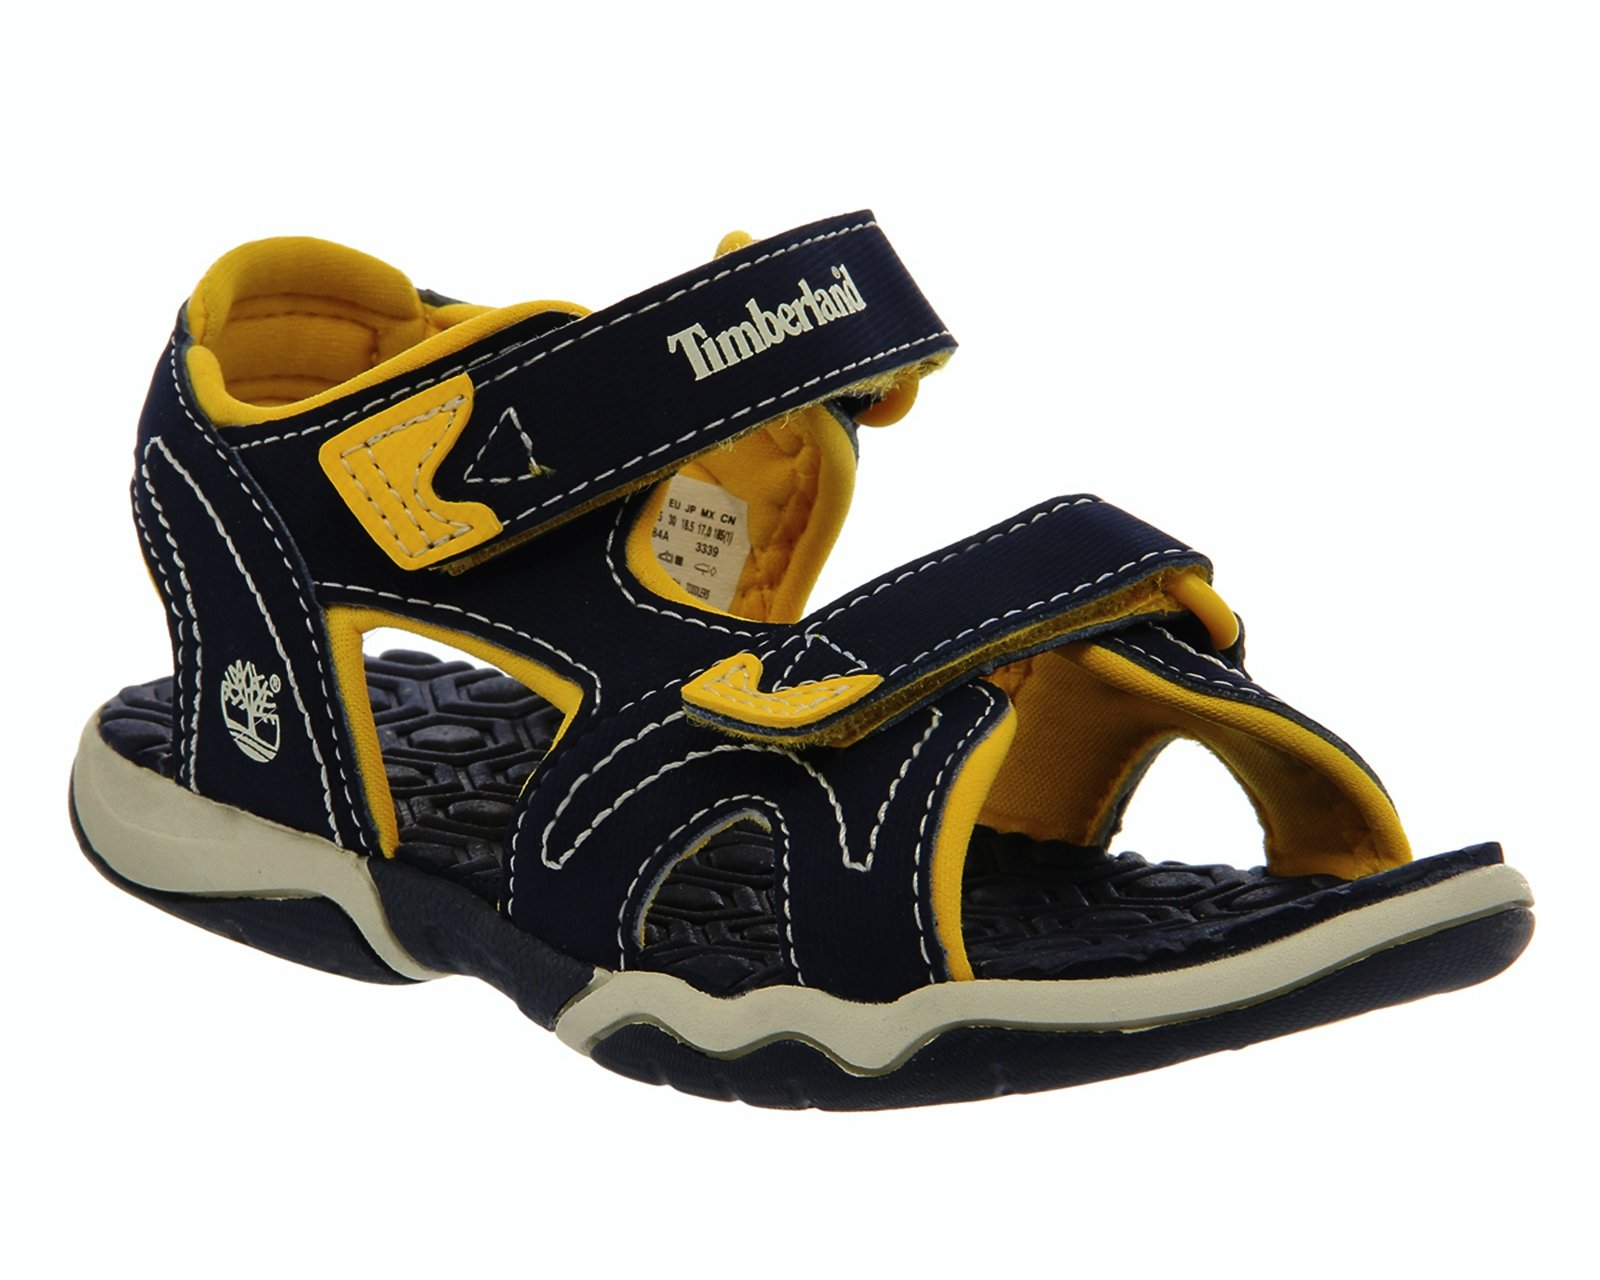 best kid sandals for wide feet